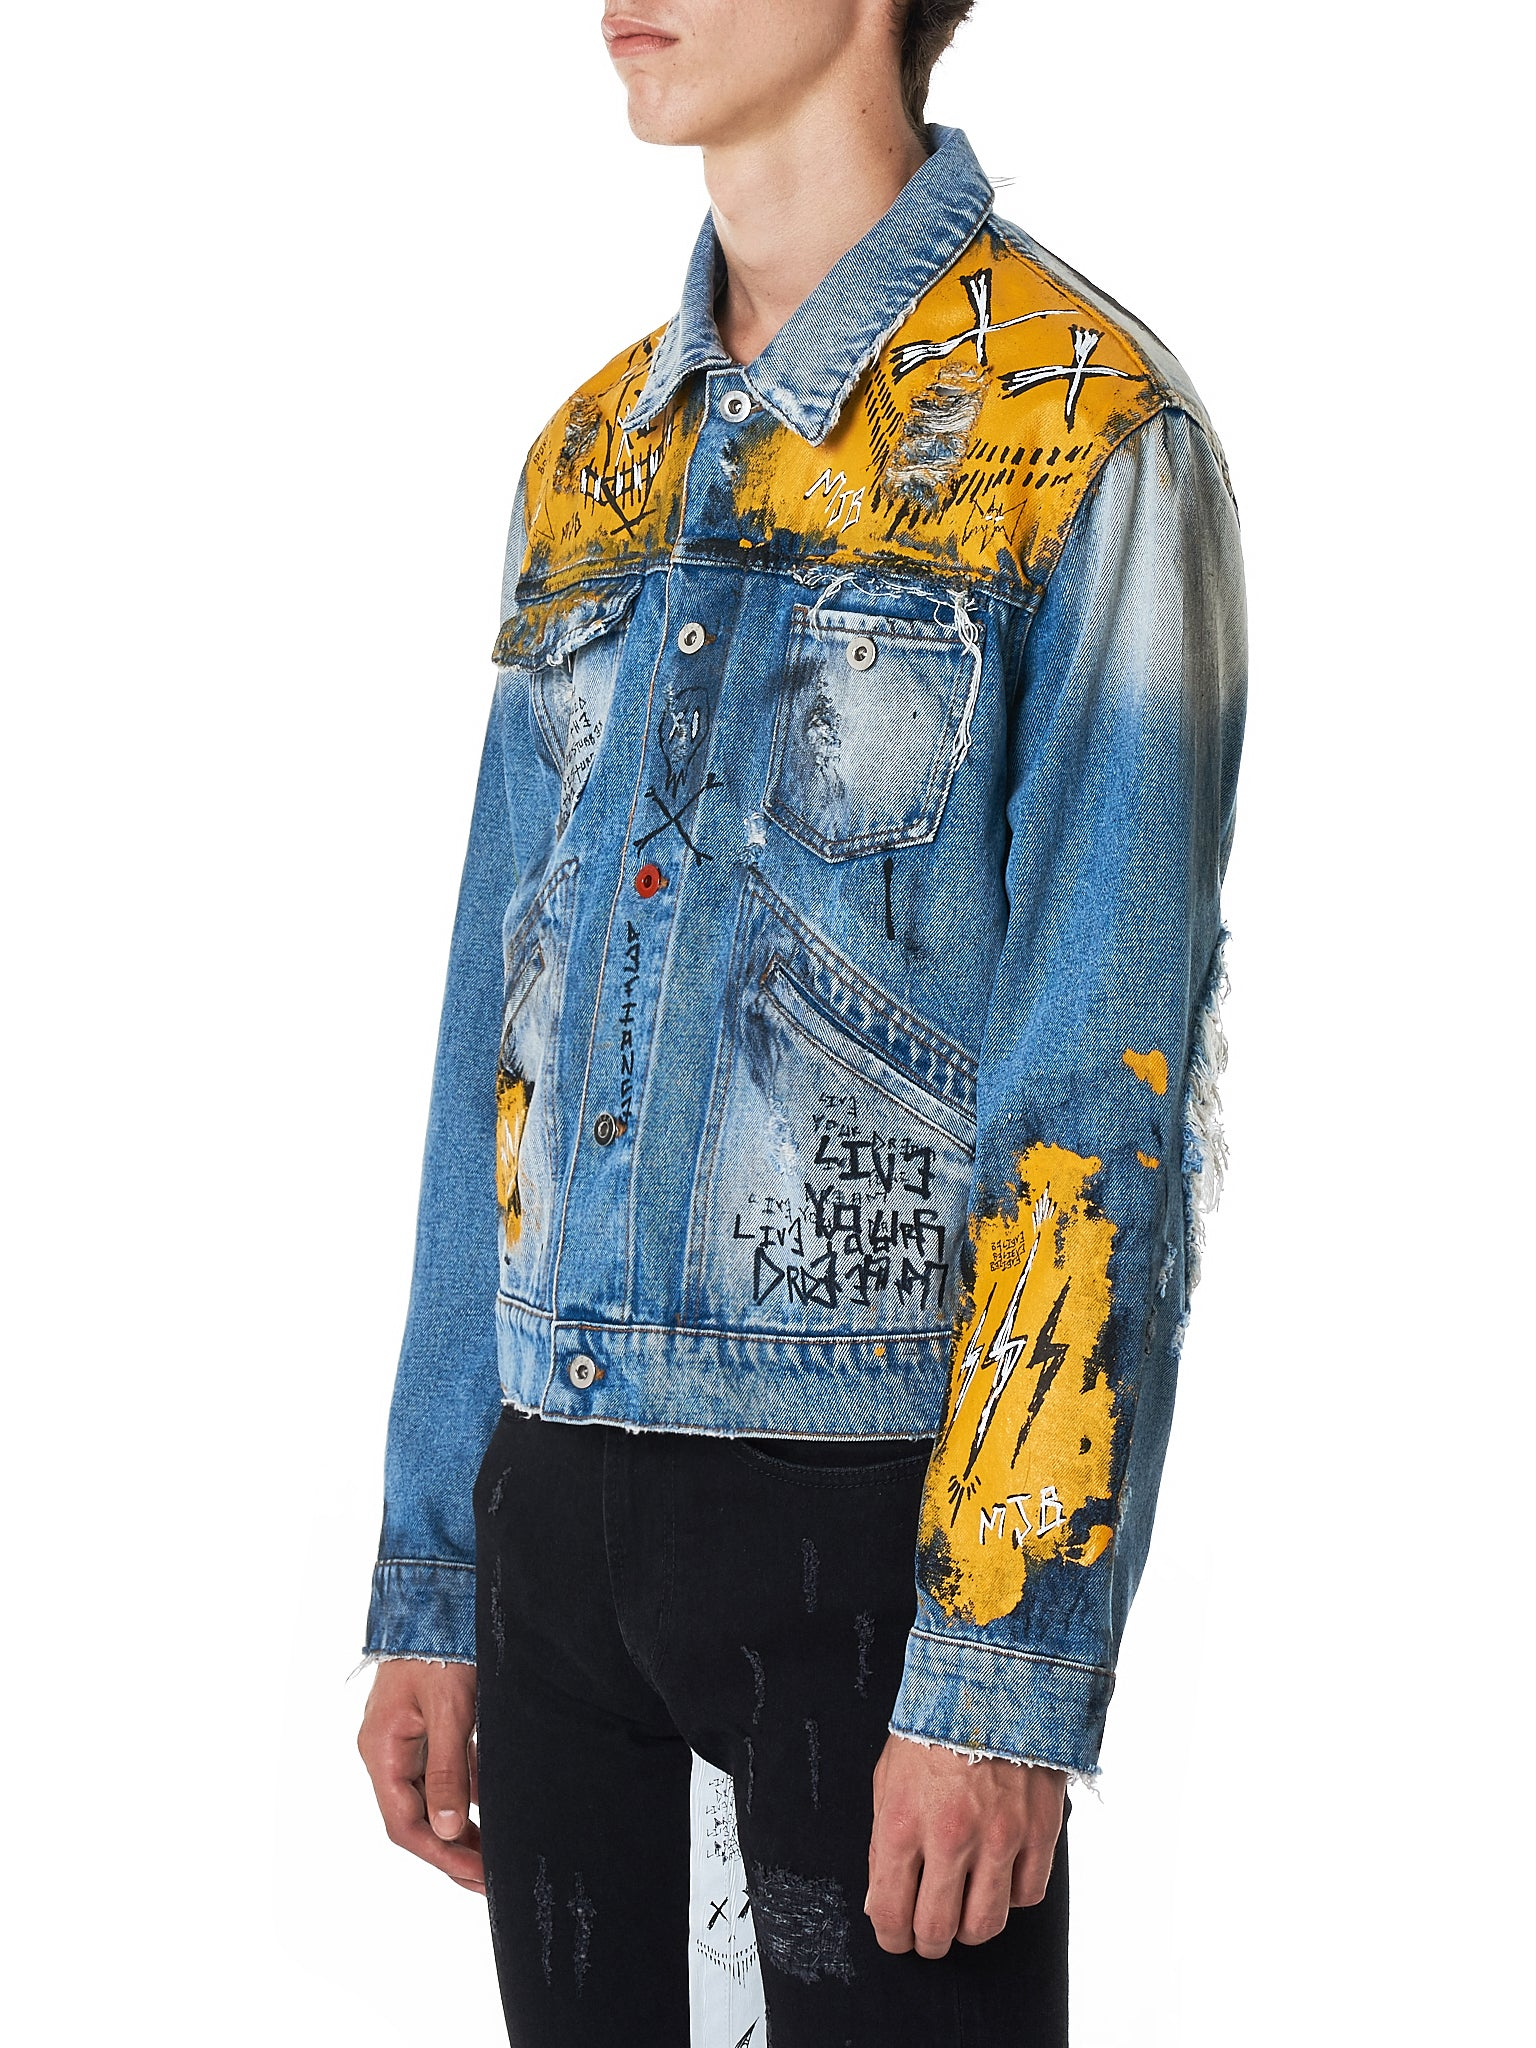 MJB (Marc Jacques Burton) Denim Jacket - Hlorenzo Side